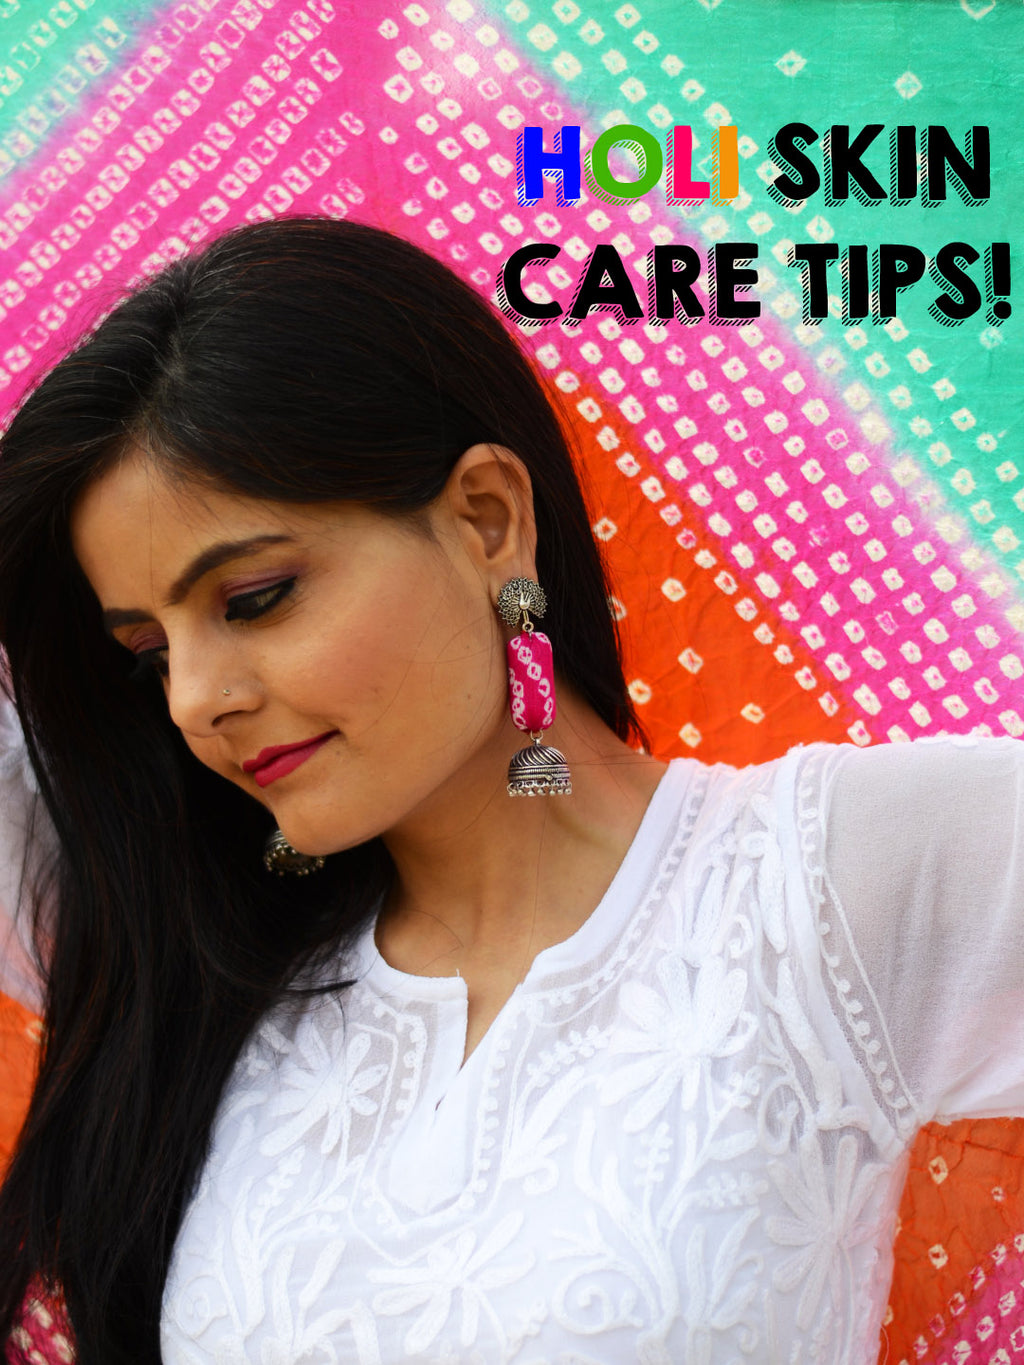 Tips to avoid looking like a horror movie star post Holi!